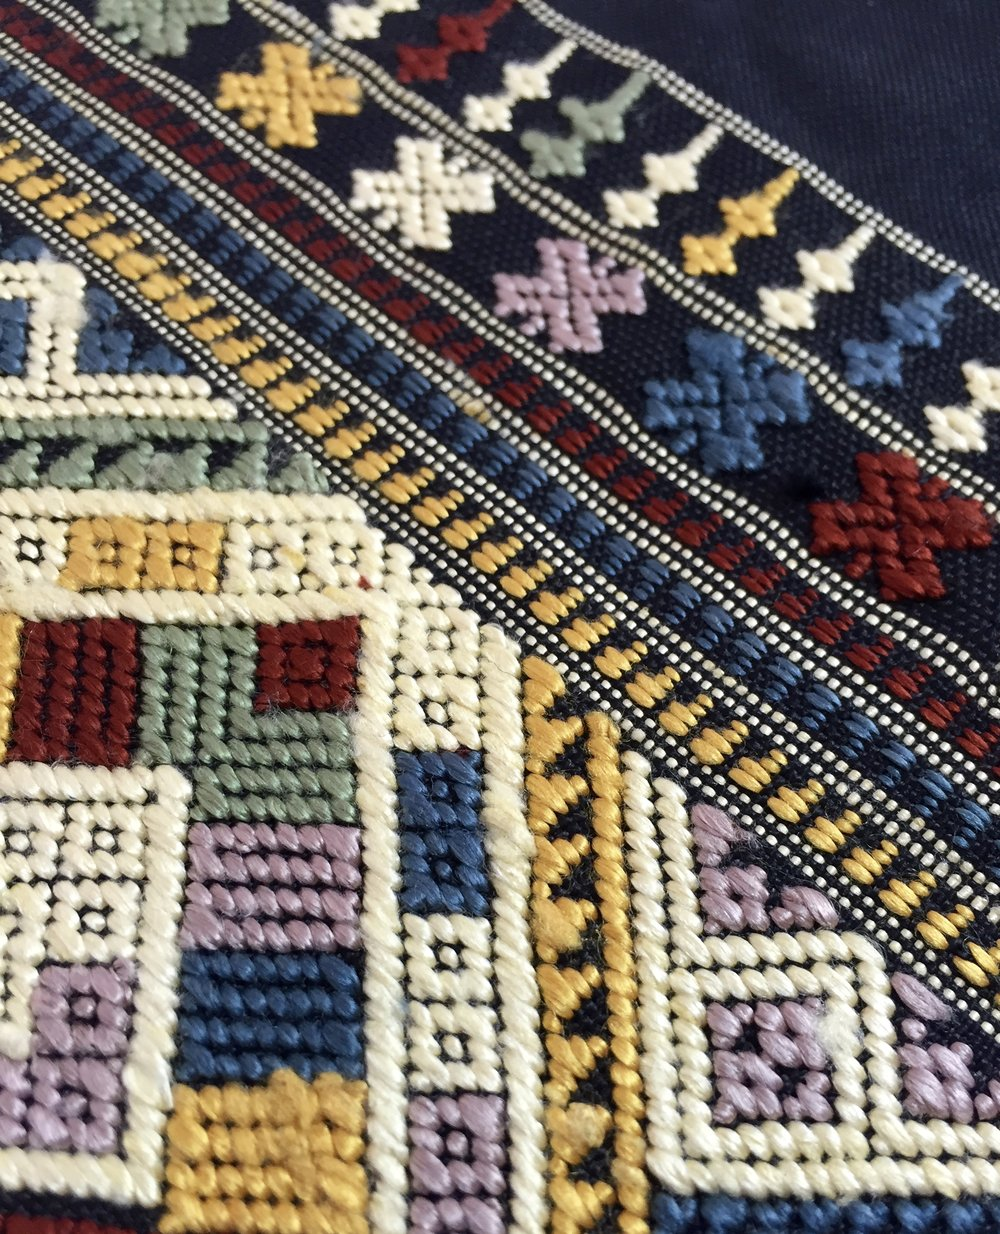 The sophisticated detail and symbolic motifs of handwoven silk textiles from the Tai Daeng and Tai Phouan ethnic groups in Laos, part of an initiative of Ock Pop Tok's  Village Weaver's Project  in Luang Prabang, Laos.